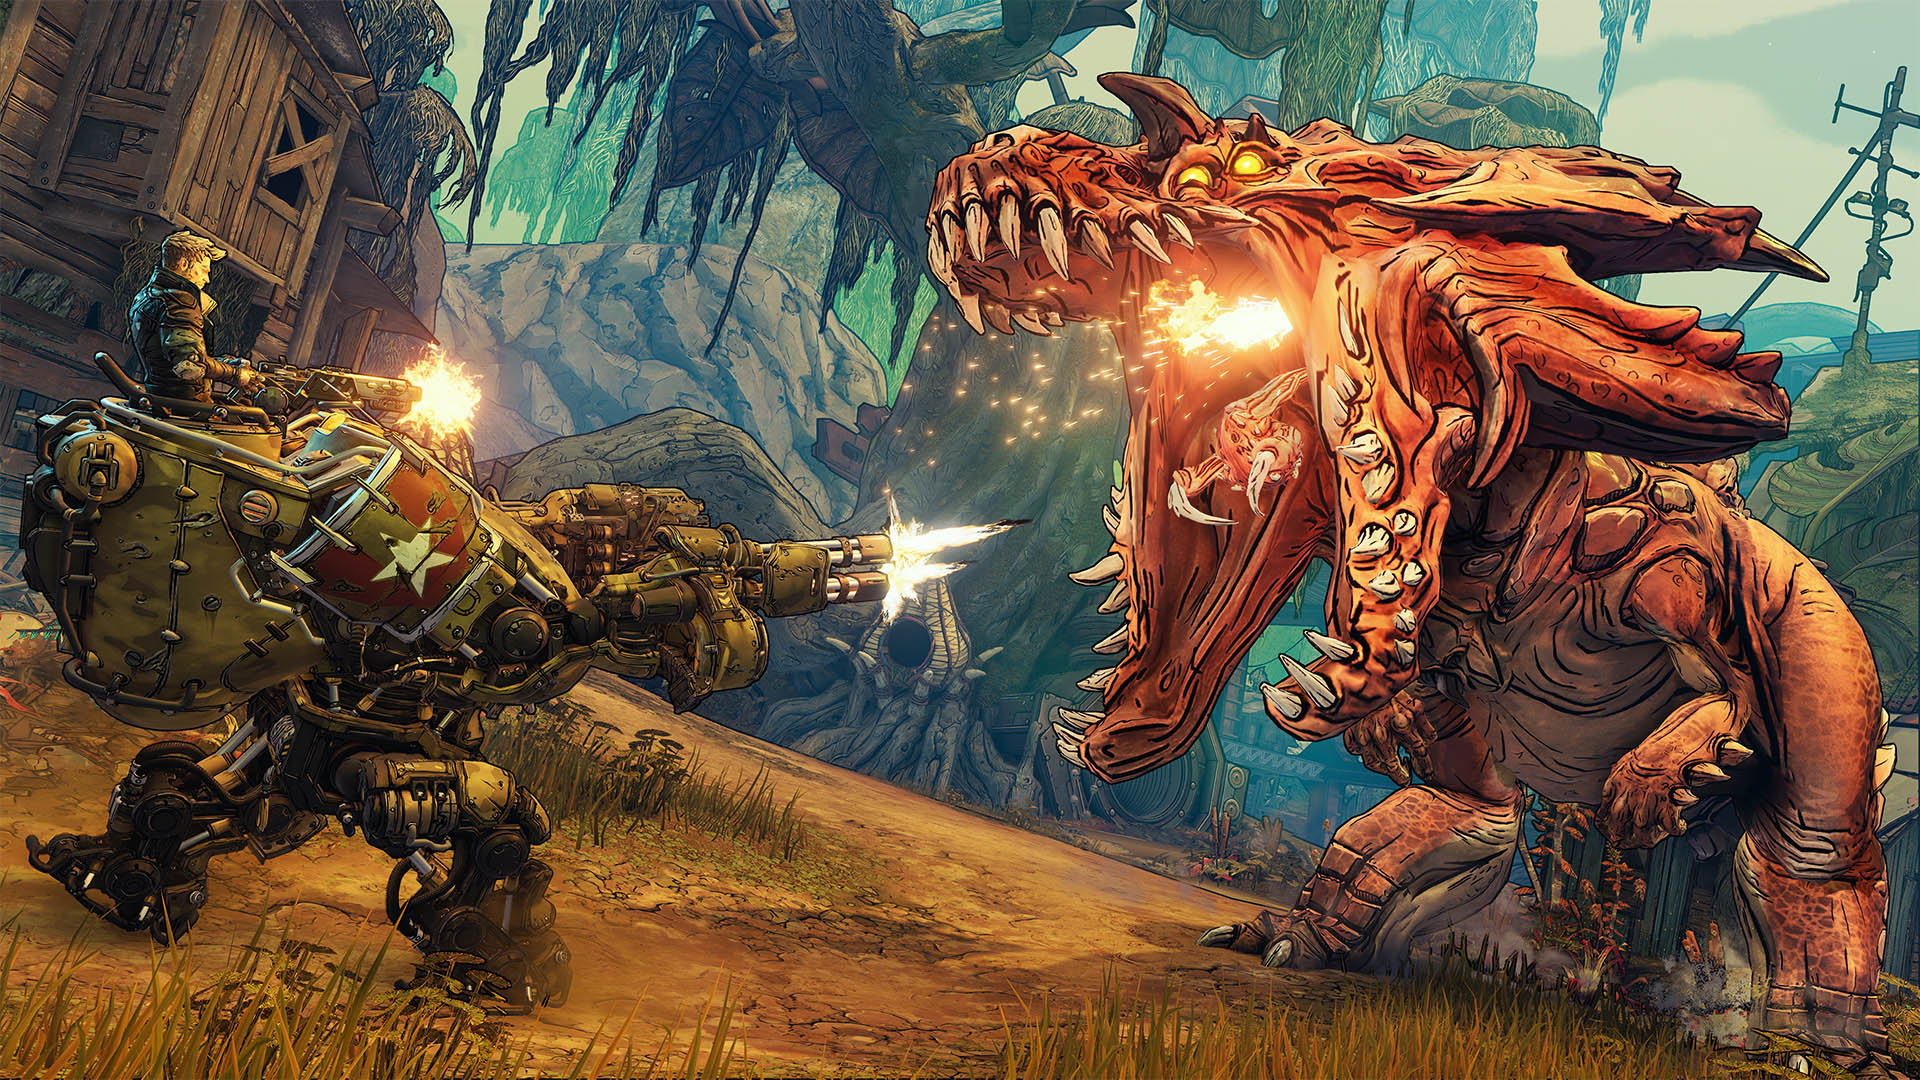 Borderlands 3 to Last 35 Hours Without Even Getting into a Lot of Side Missions, Says Creative Director